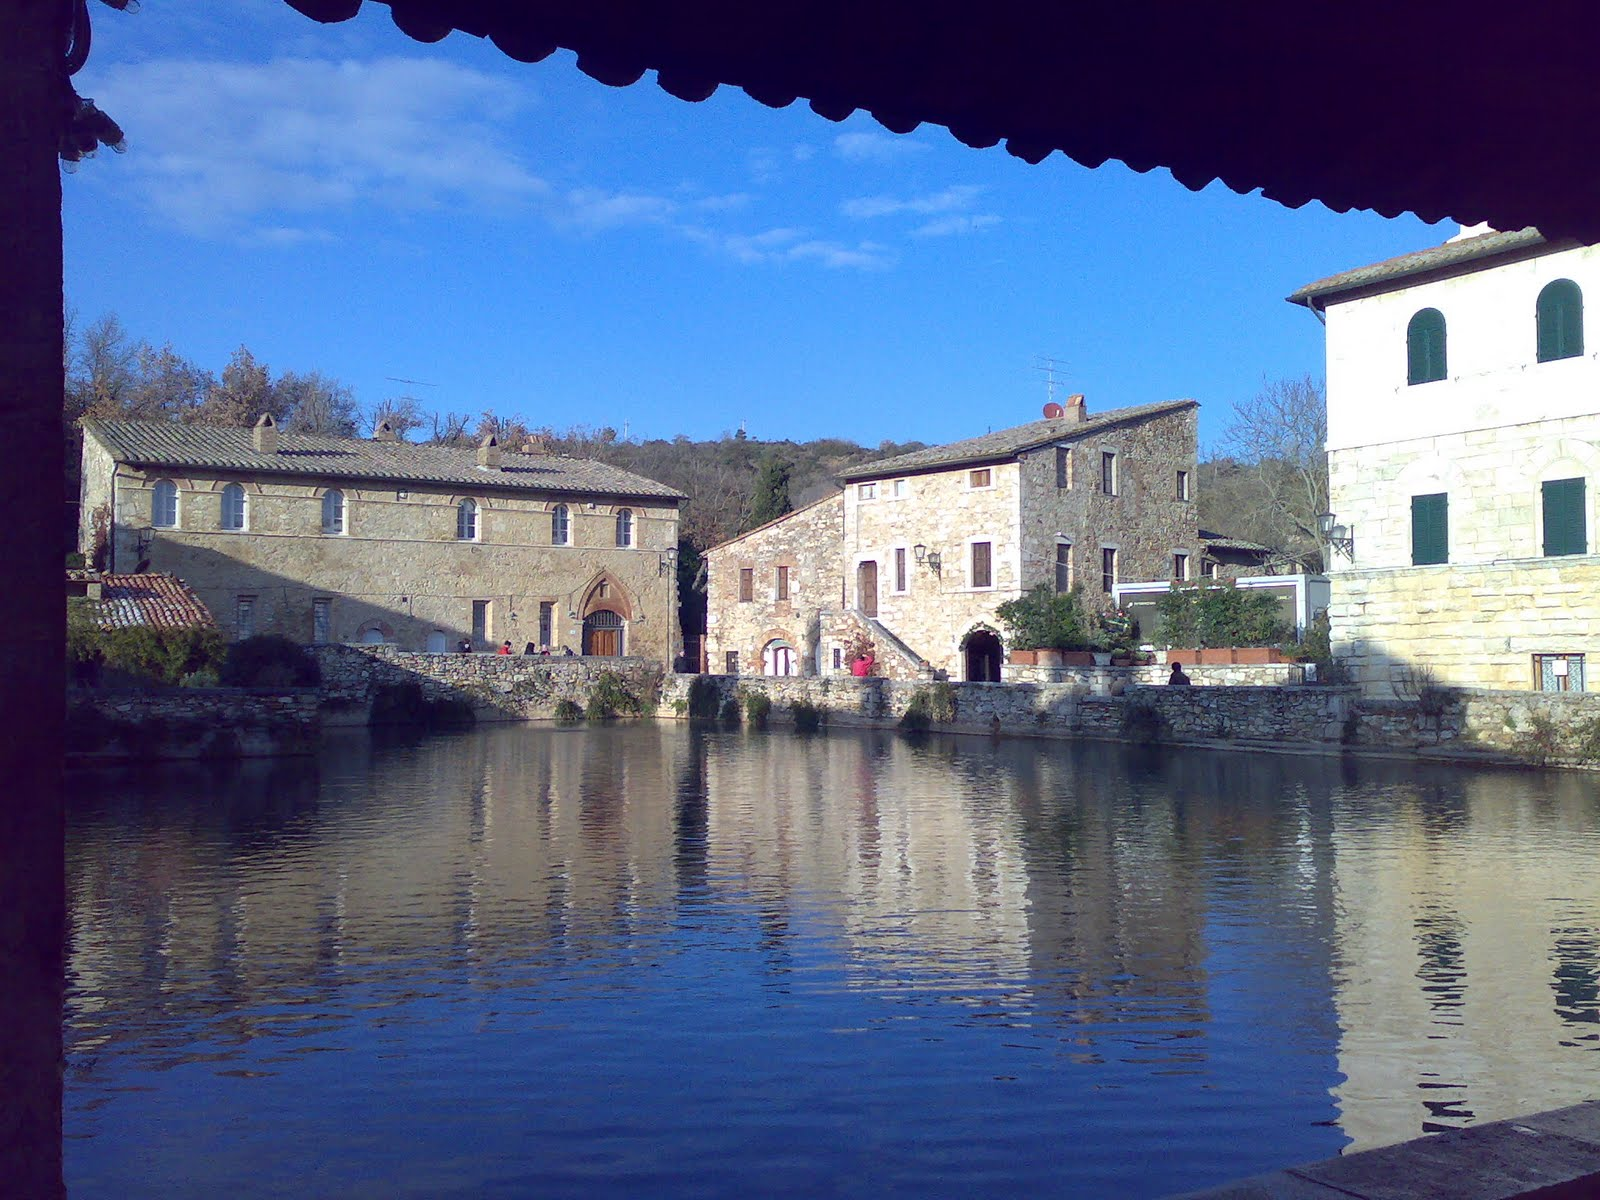 Lees Tuscan Odyssey: 13. Bagno Vignoni hot springs and Pienza